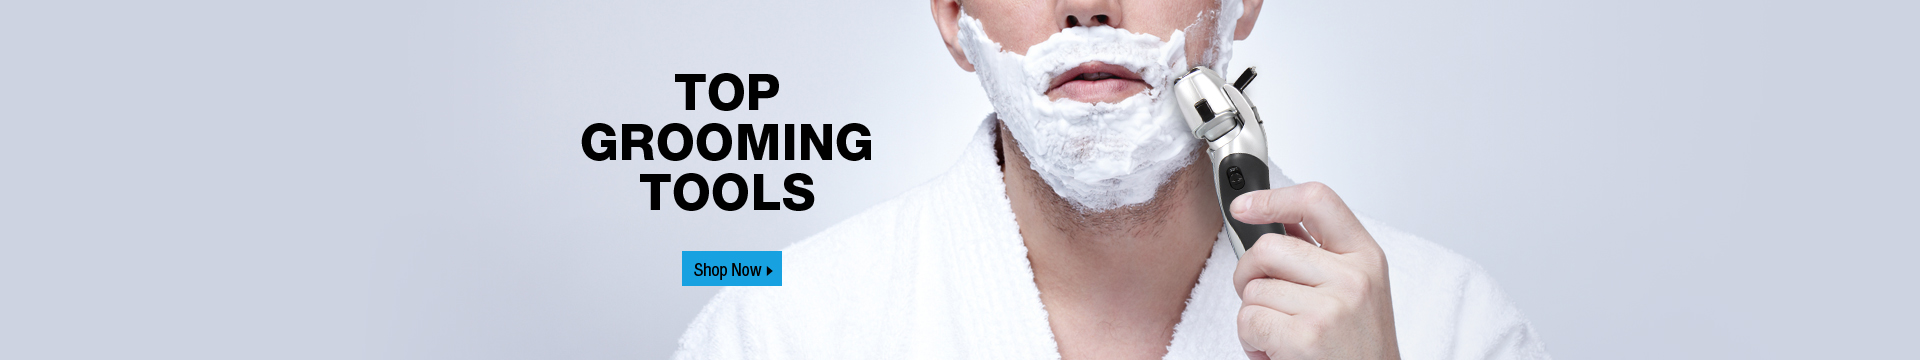 Top grooming tools